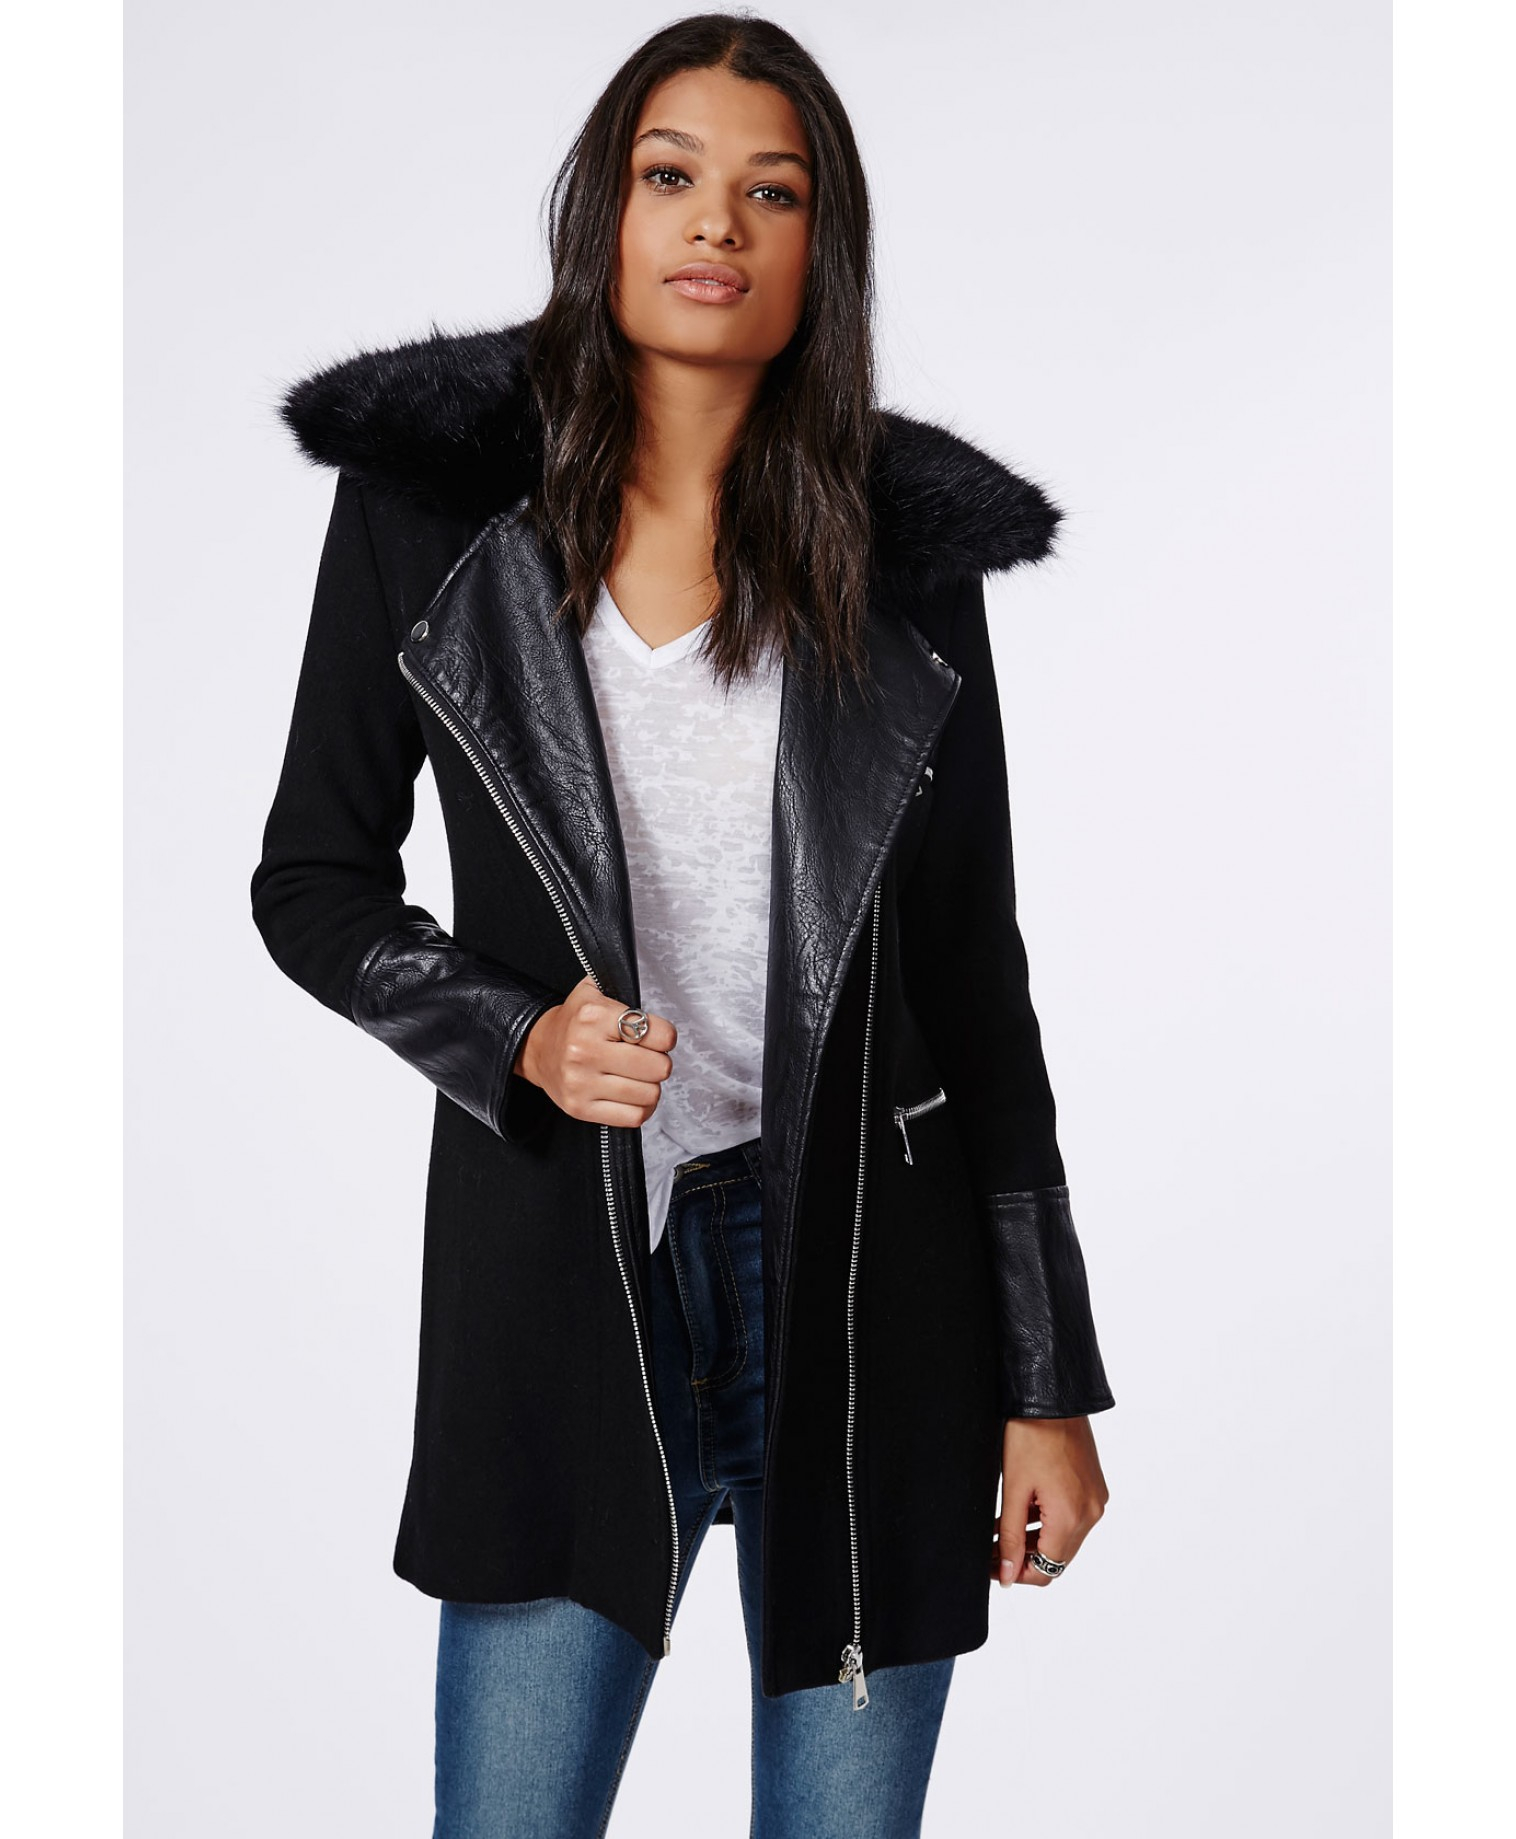 Ladies longline leather biker jacket – Jackets photo blog